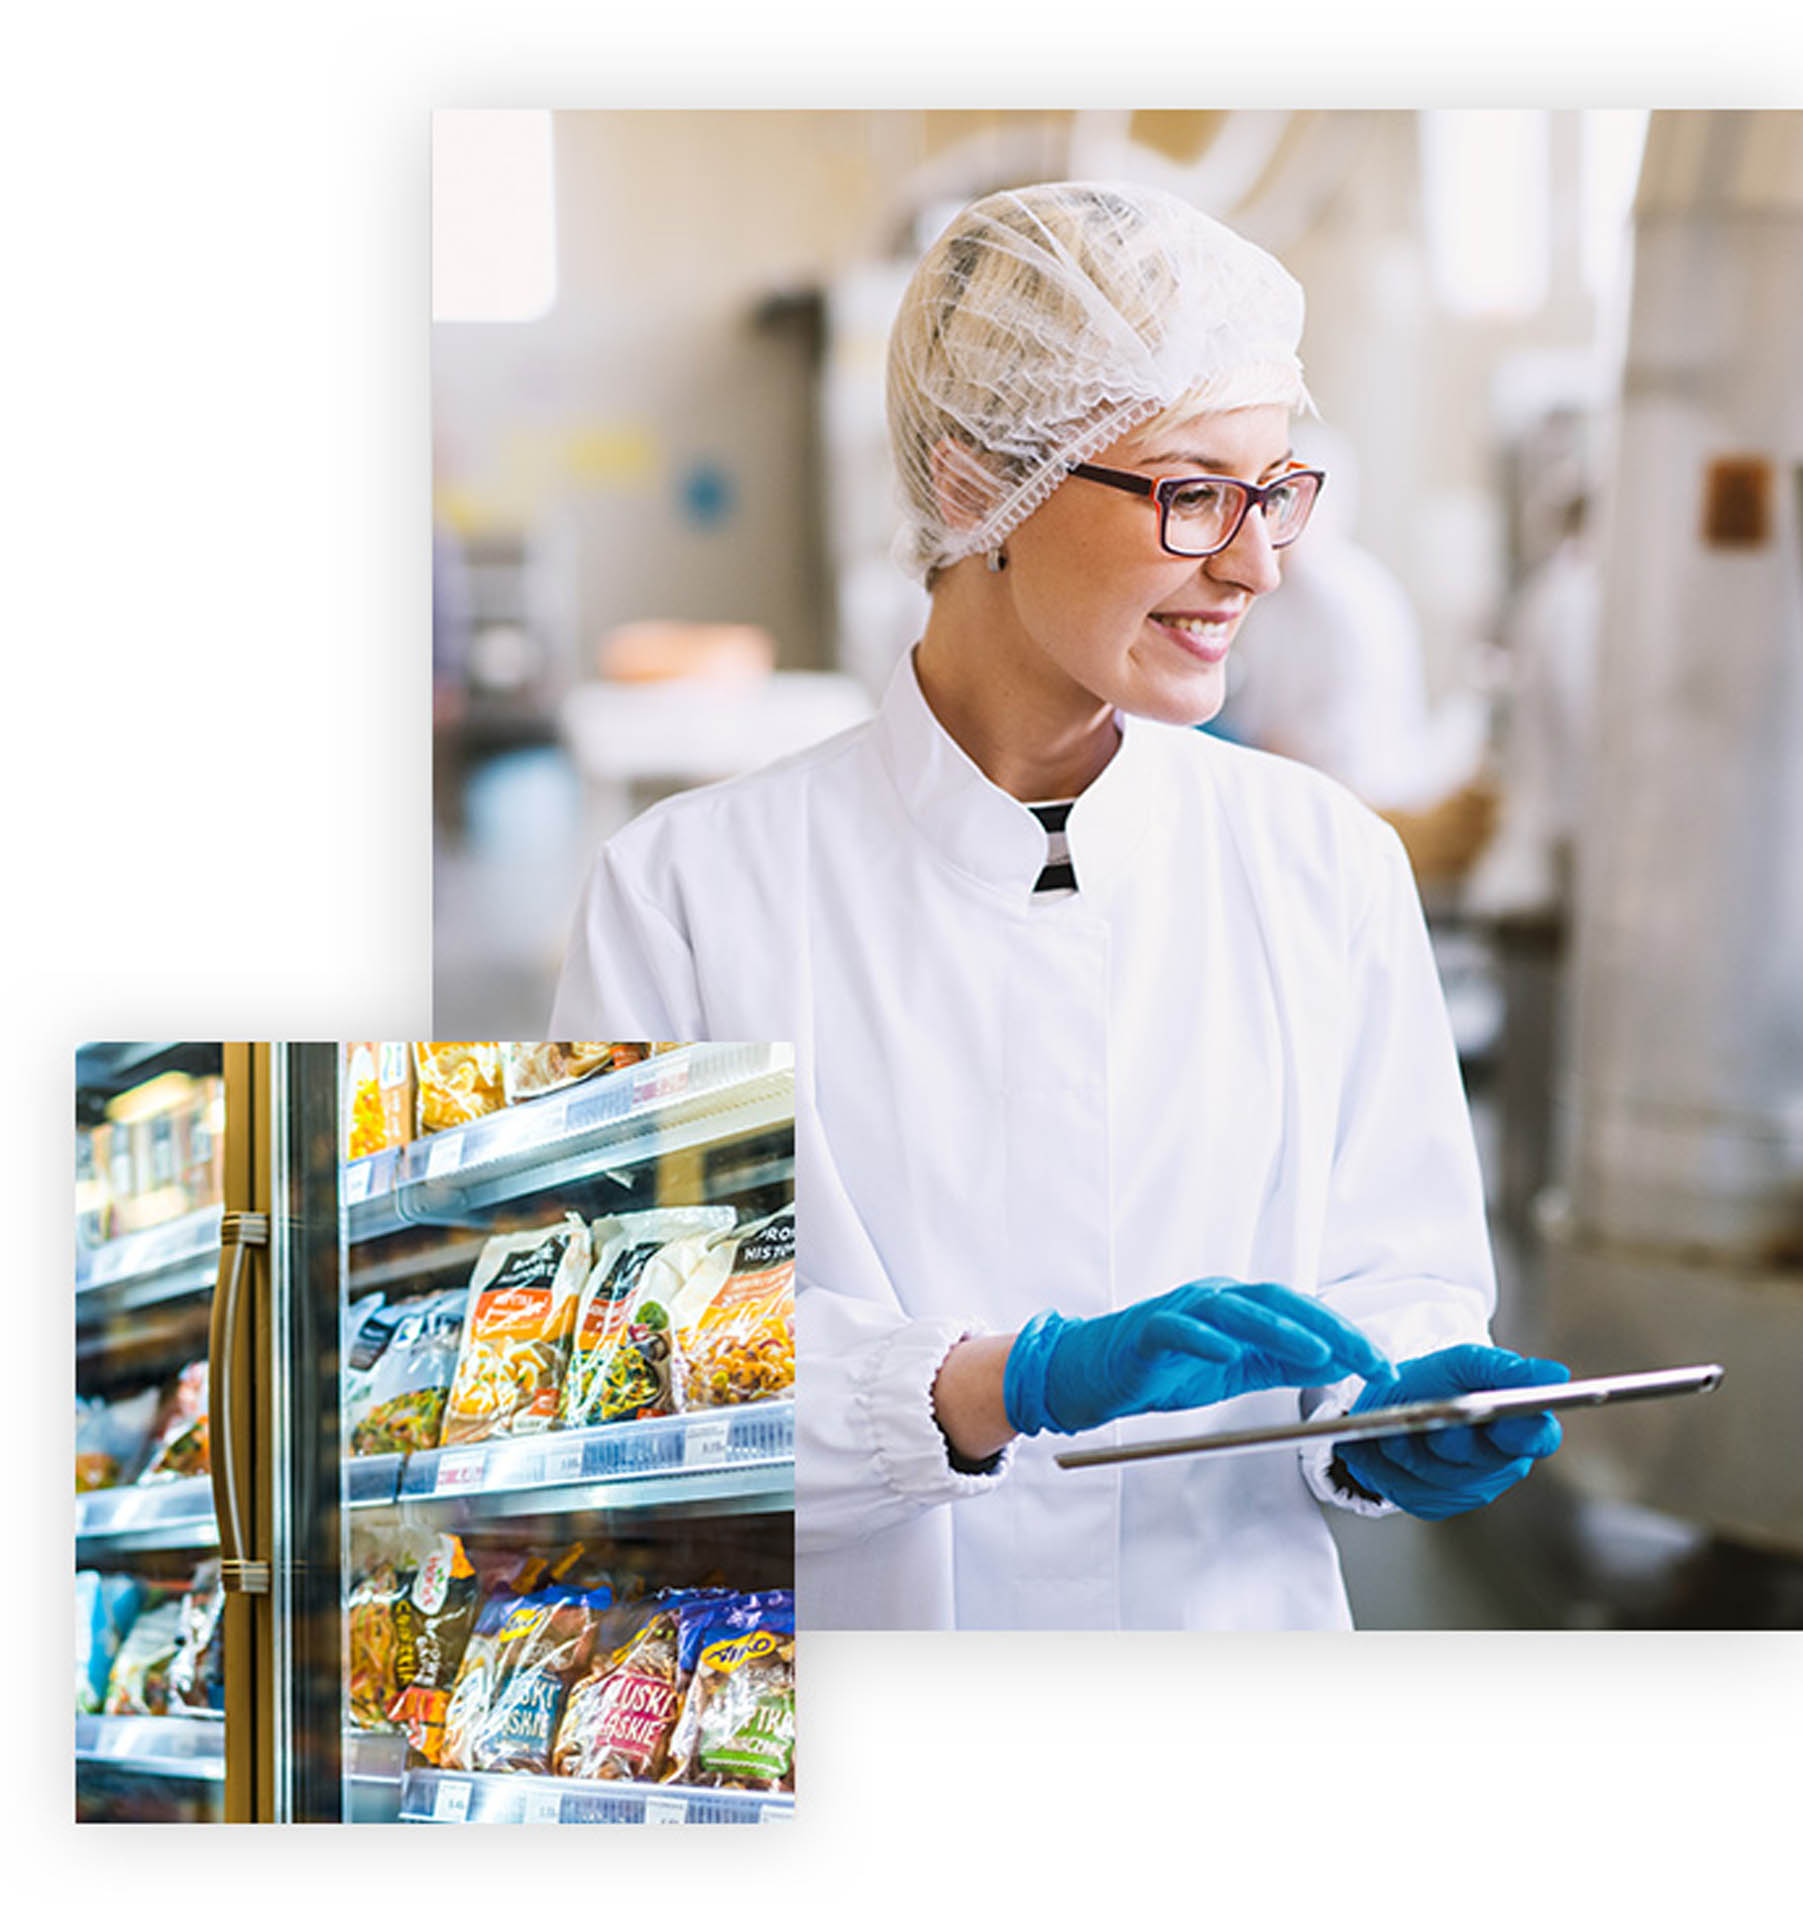 Biometic's Food Safety Solutions